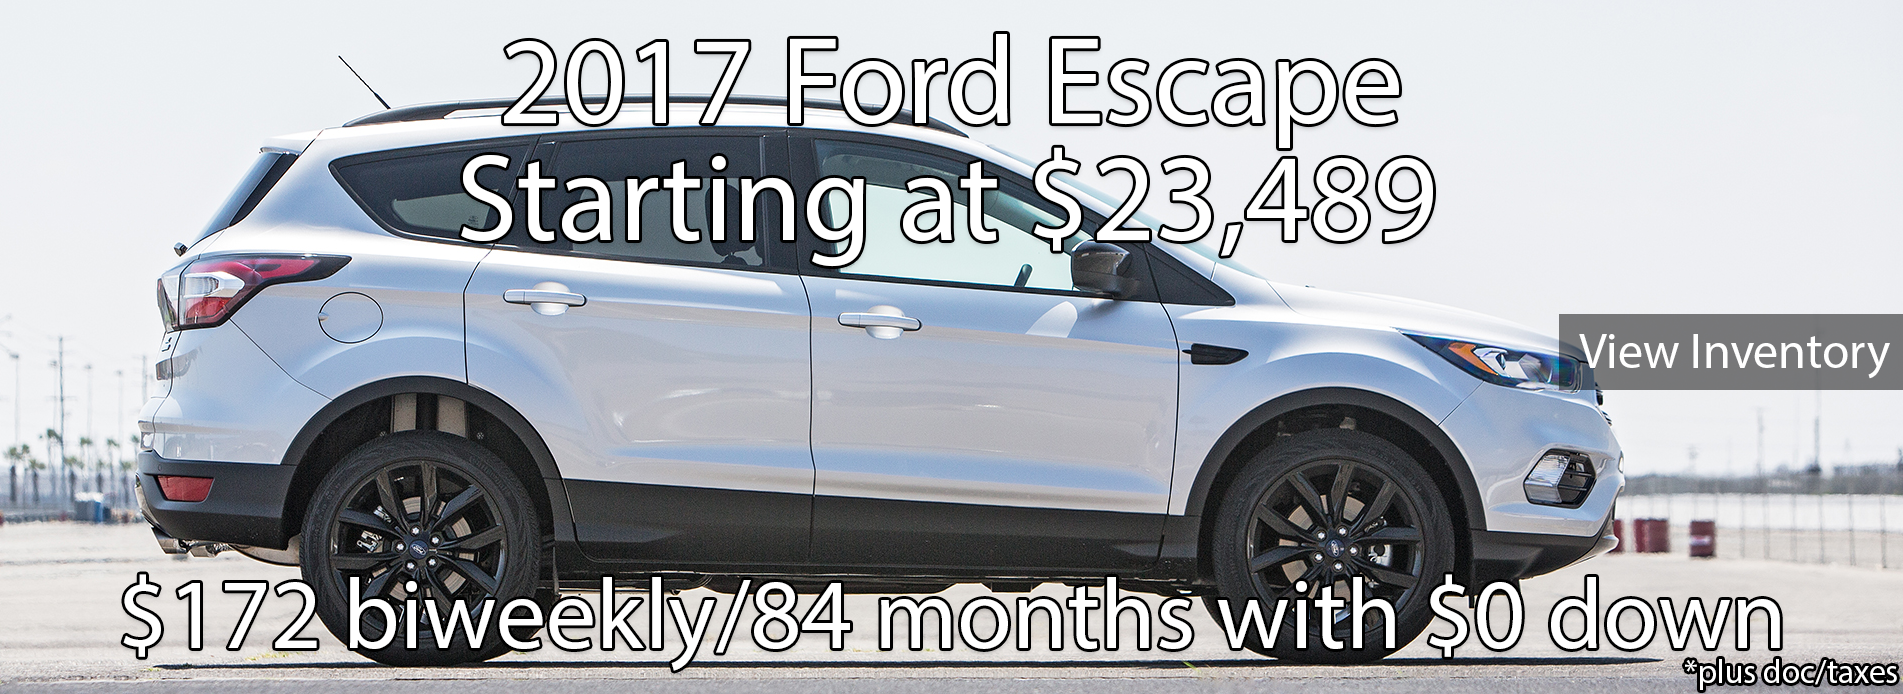 2017 Ford Escape Inventory